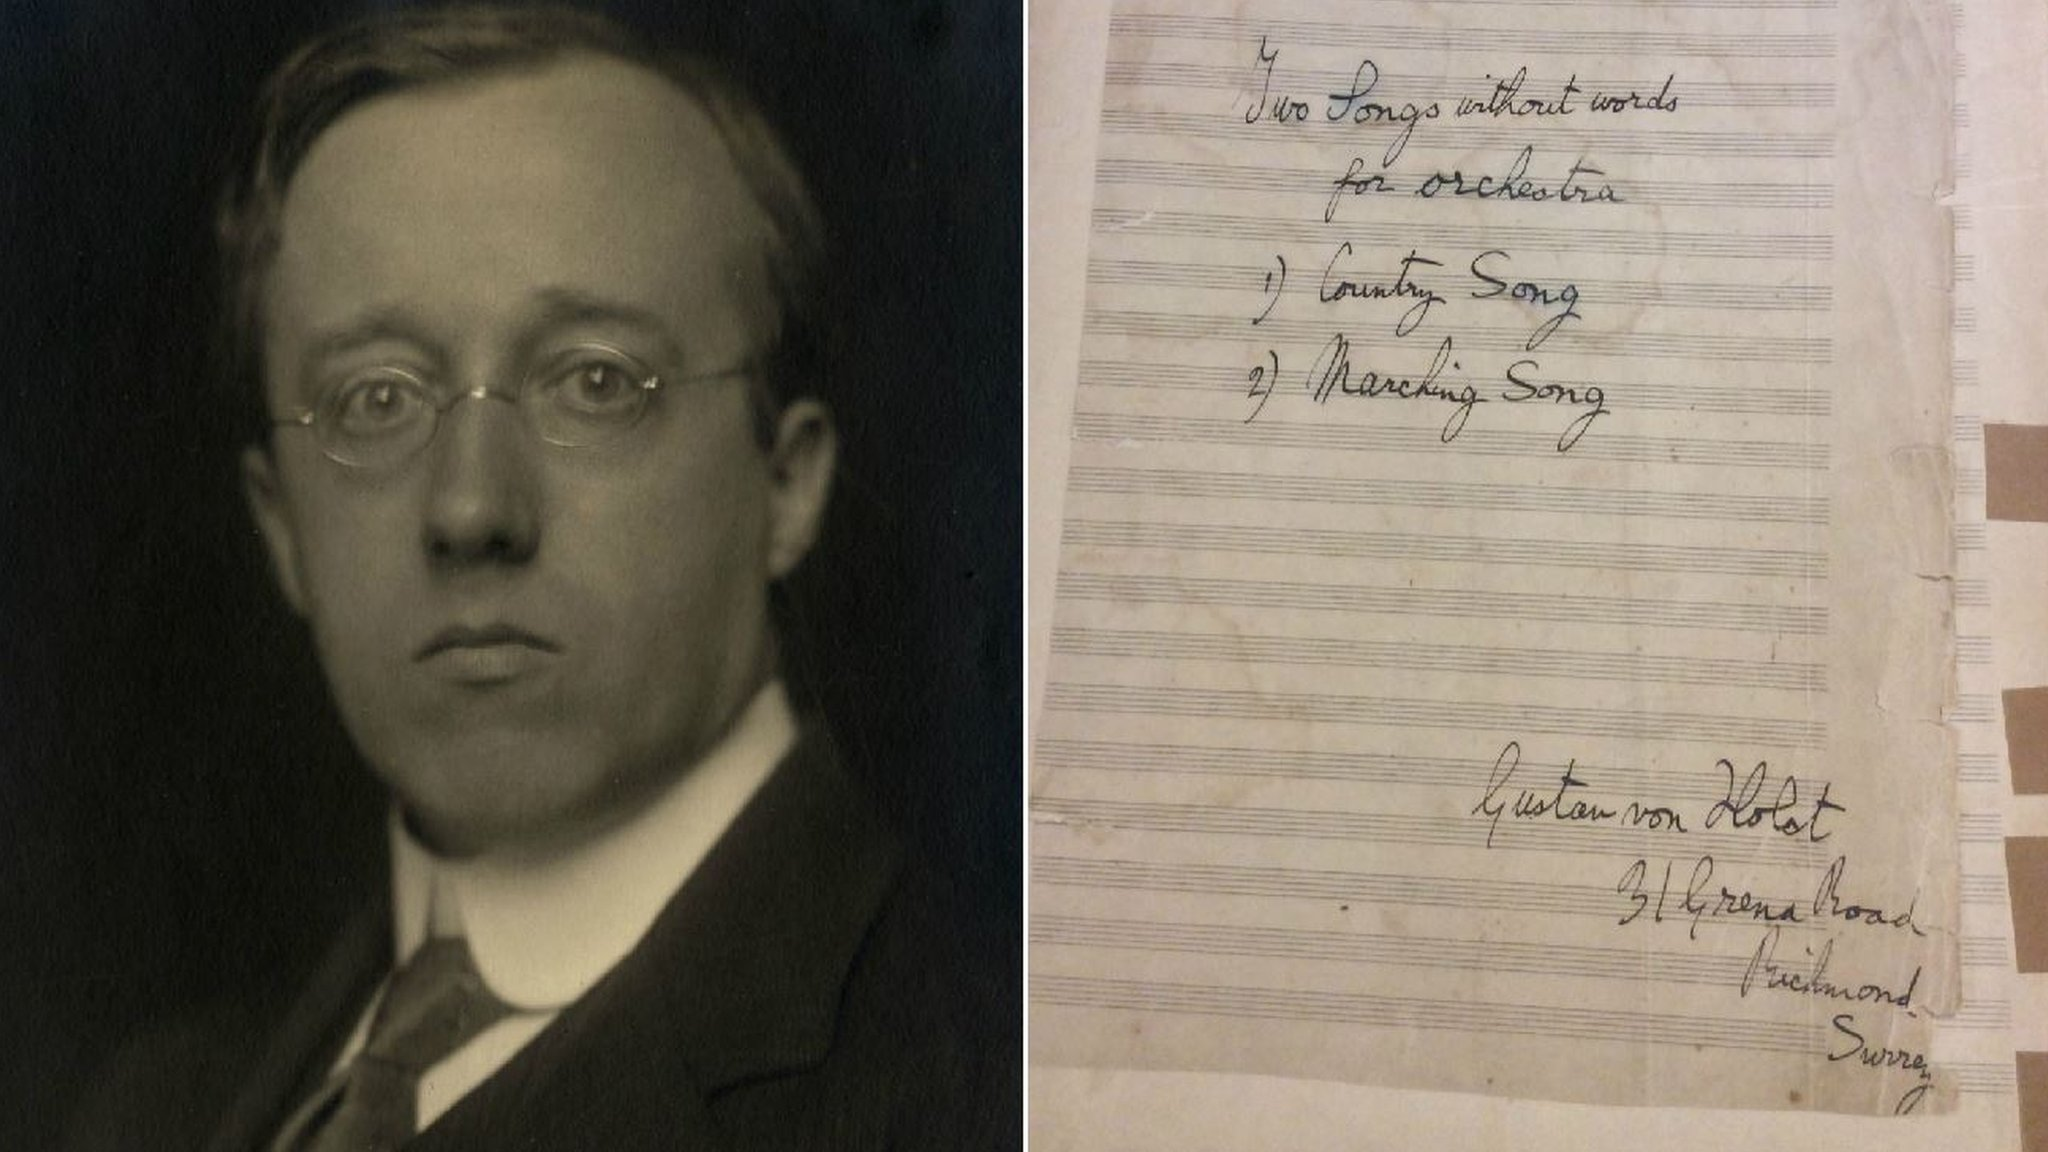 'Lost' Gustav Holst score returned to UK after 100 years